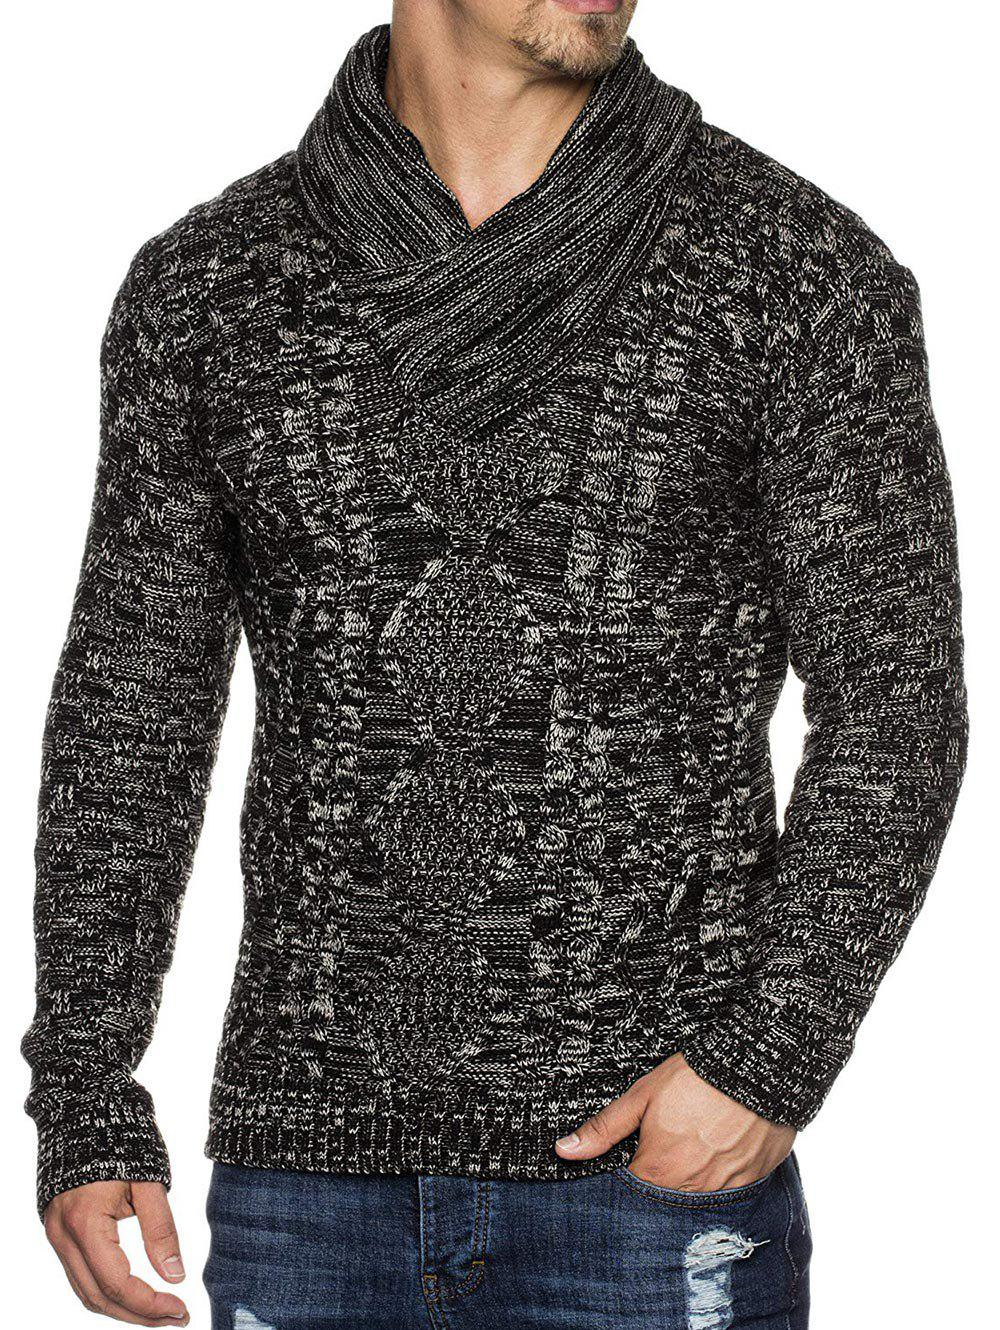 Chic Casual Cable Knit Shawl Collar Sweater